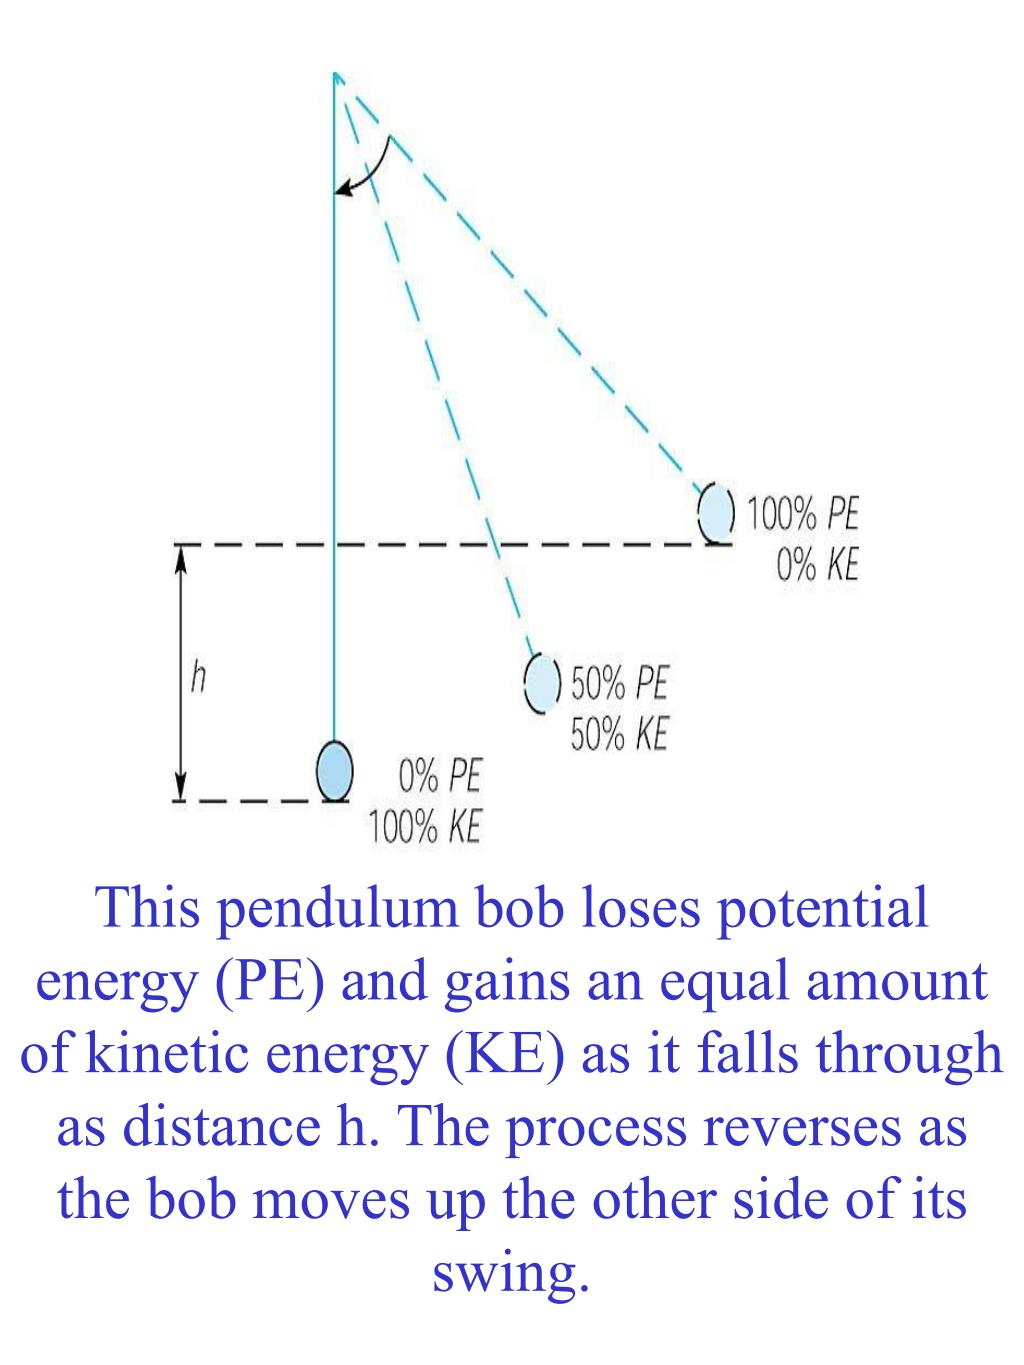 This pendulum bob loses potential energy (PE) and gains an equal amount of kinetic energy (KE) as it falls through as distance h. The process reverses as the bob moves up the other side of its swing.